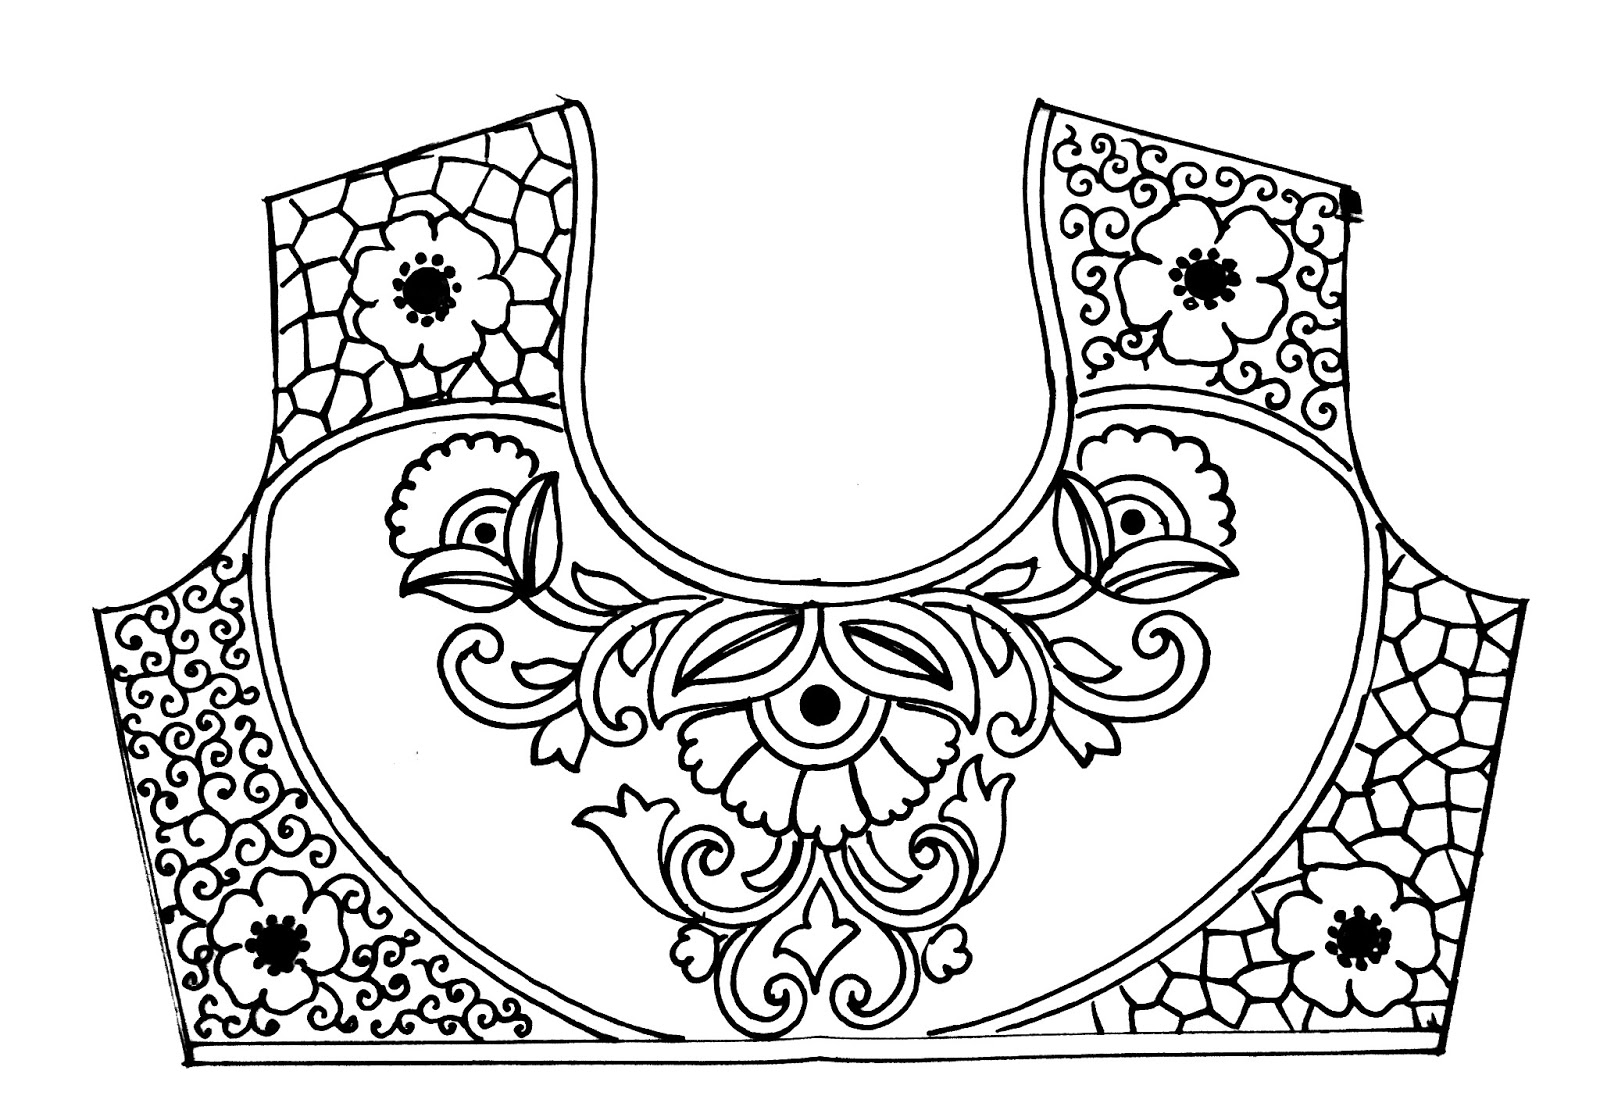 Top 3 emroidery saree blouse designs Sketches for hand work, blouse design patterns pencil sketch on tracing paper for maggam work, hand work.